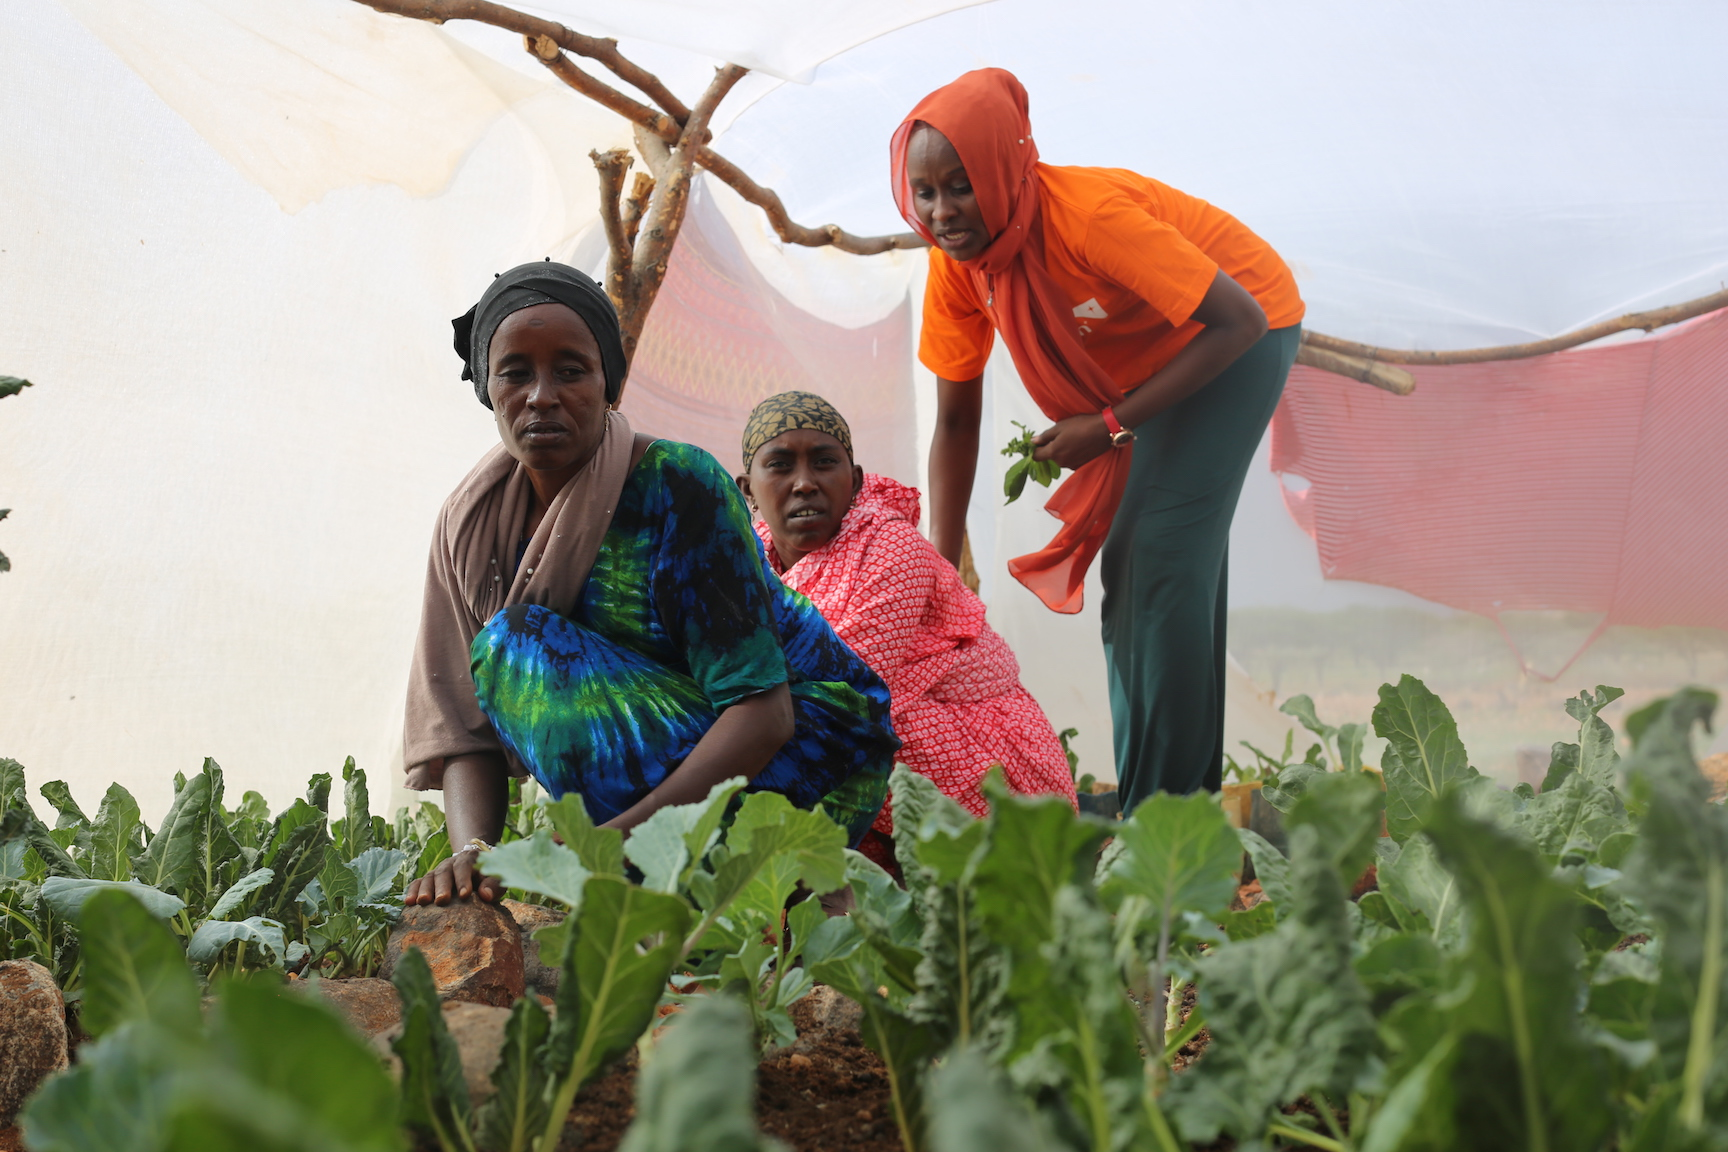 Saroi and other women in Kenya's Laisamis County that have embraced kitchen gardens. @World Vision Photo/By Irene Sinoya